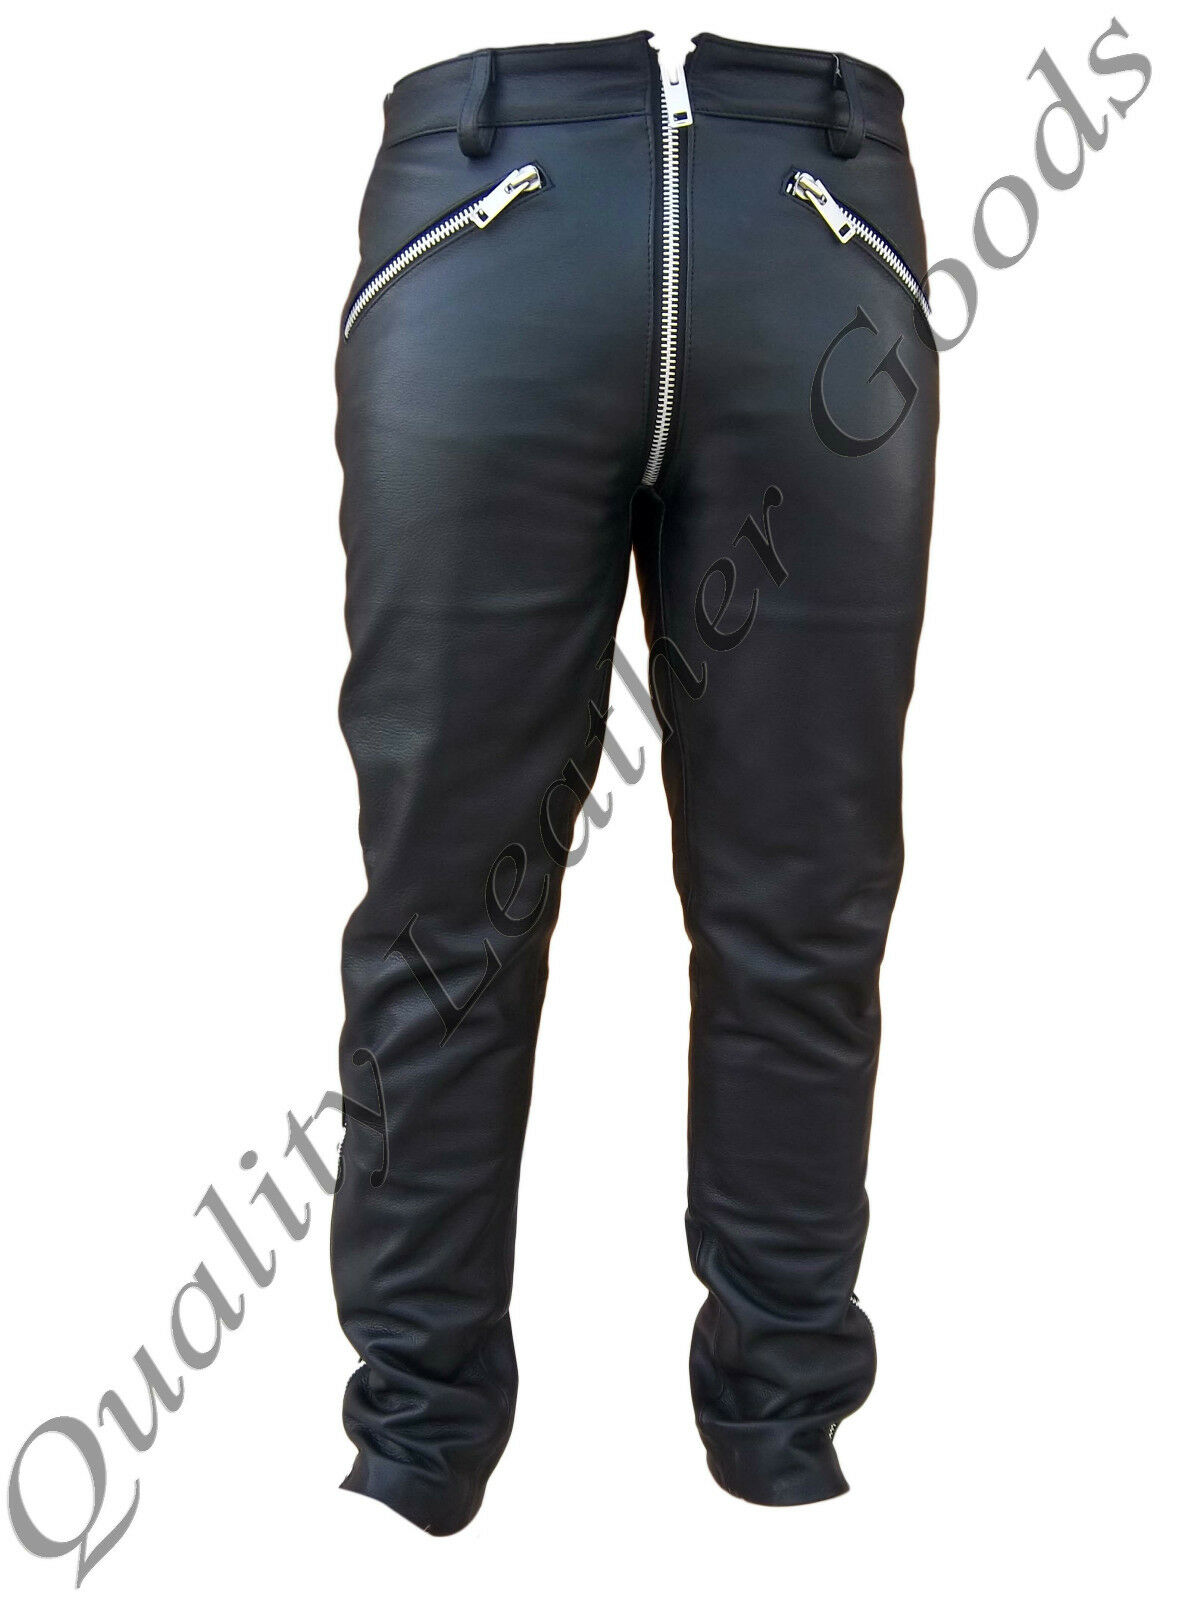 MEN SYNTHETIC LEATHER JEANS CHAPS BREECHES LUXURY PANT TROUSERS BIKER GOTHIC GAY